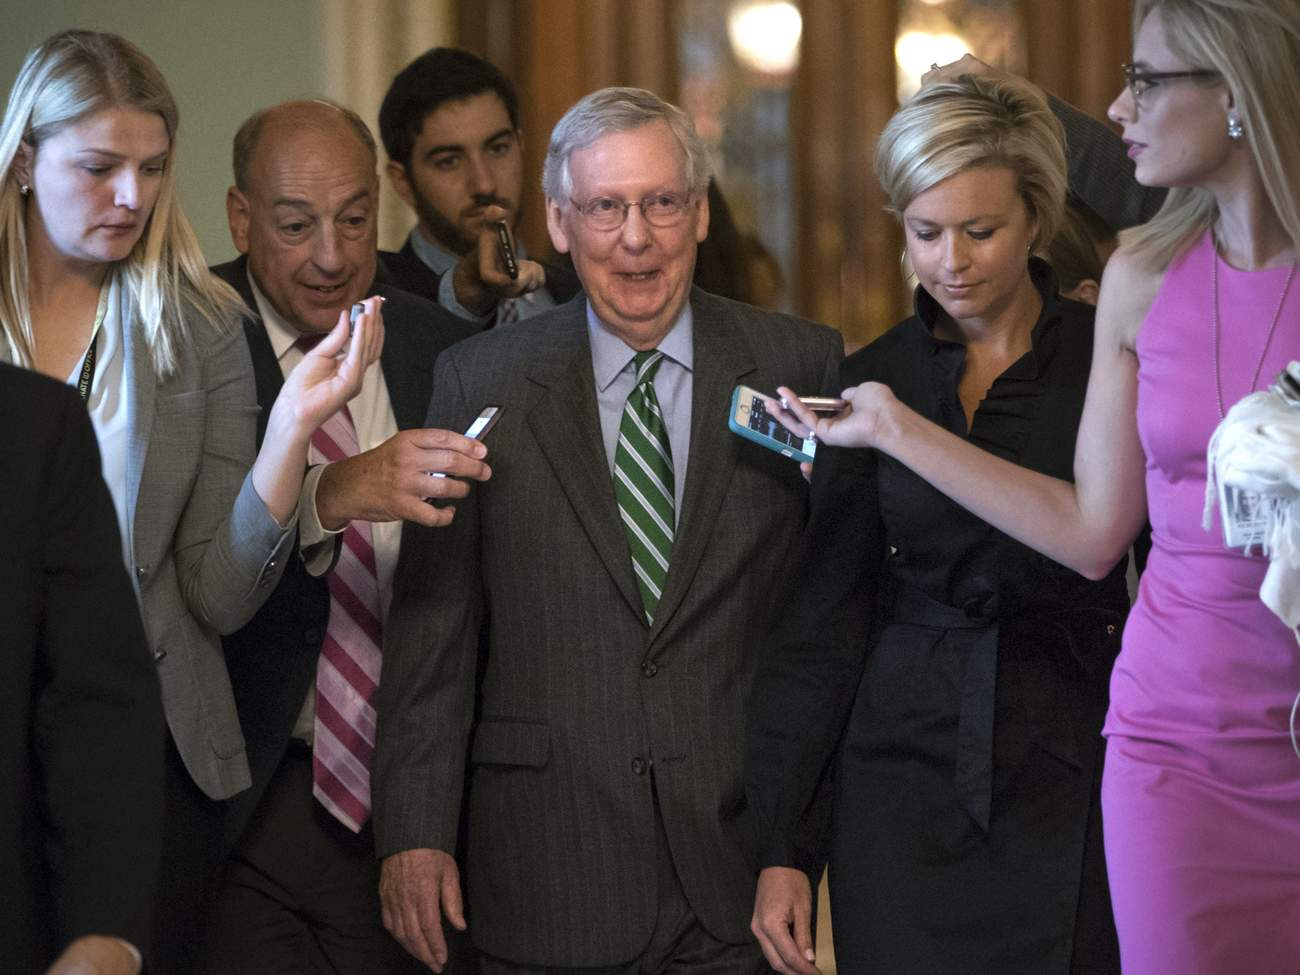 Senate Majority leader Mitch McConnell leaves the chamber after announcing the release of the Republicans' healthcare bill which represents the party's long-awaited attempt to scuttle much of President Barack Obama's Affordable Care Act, at the...